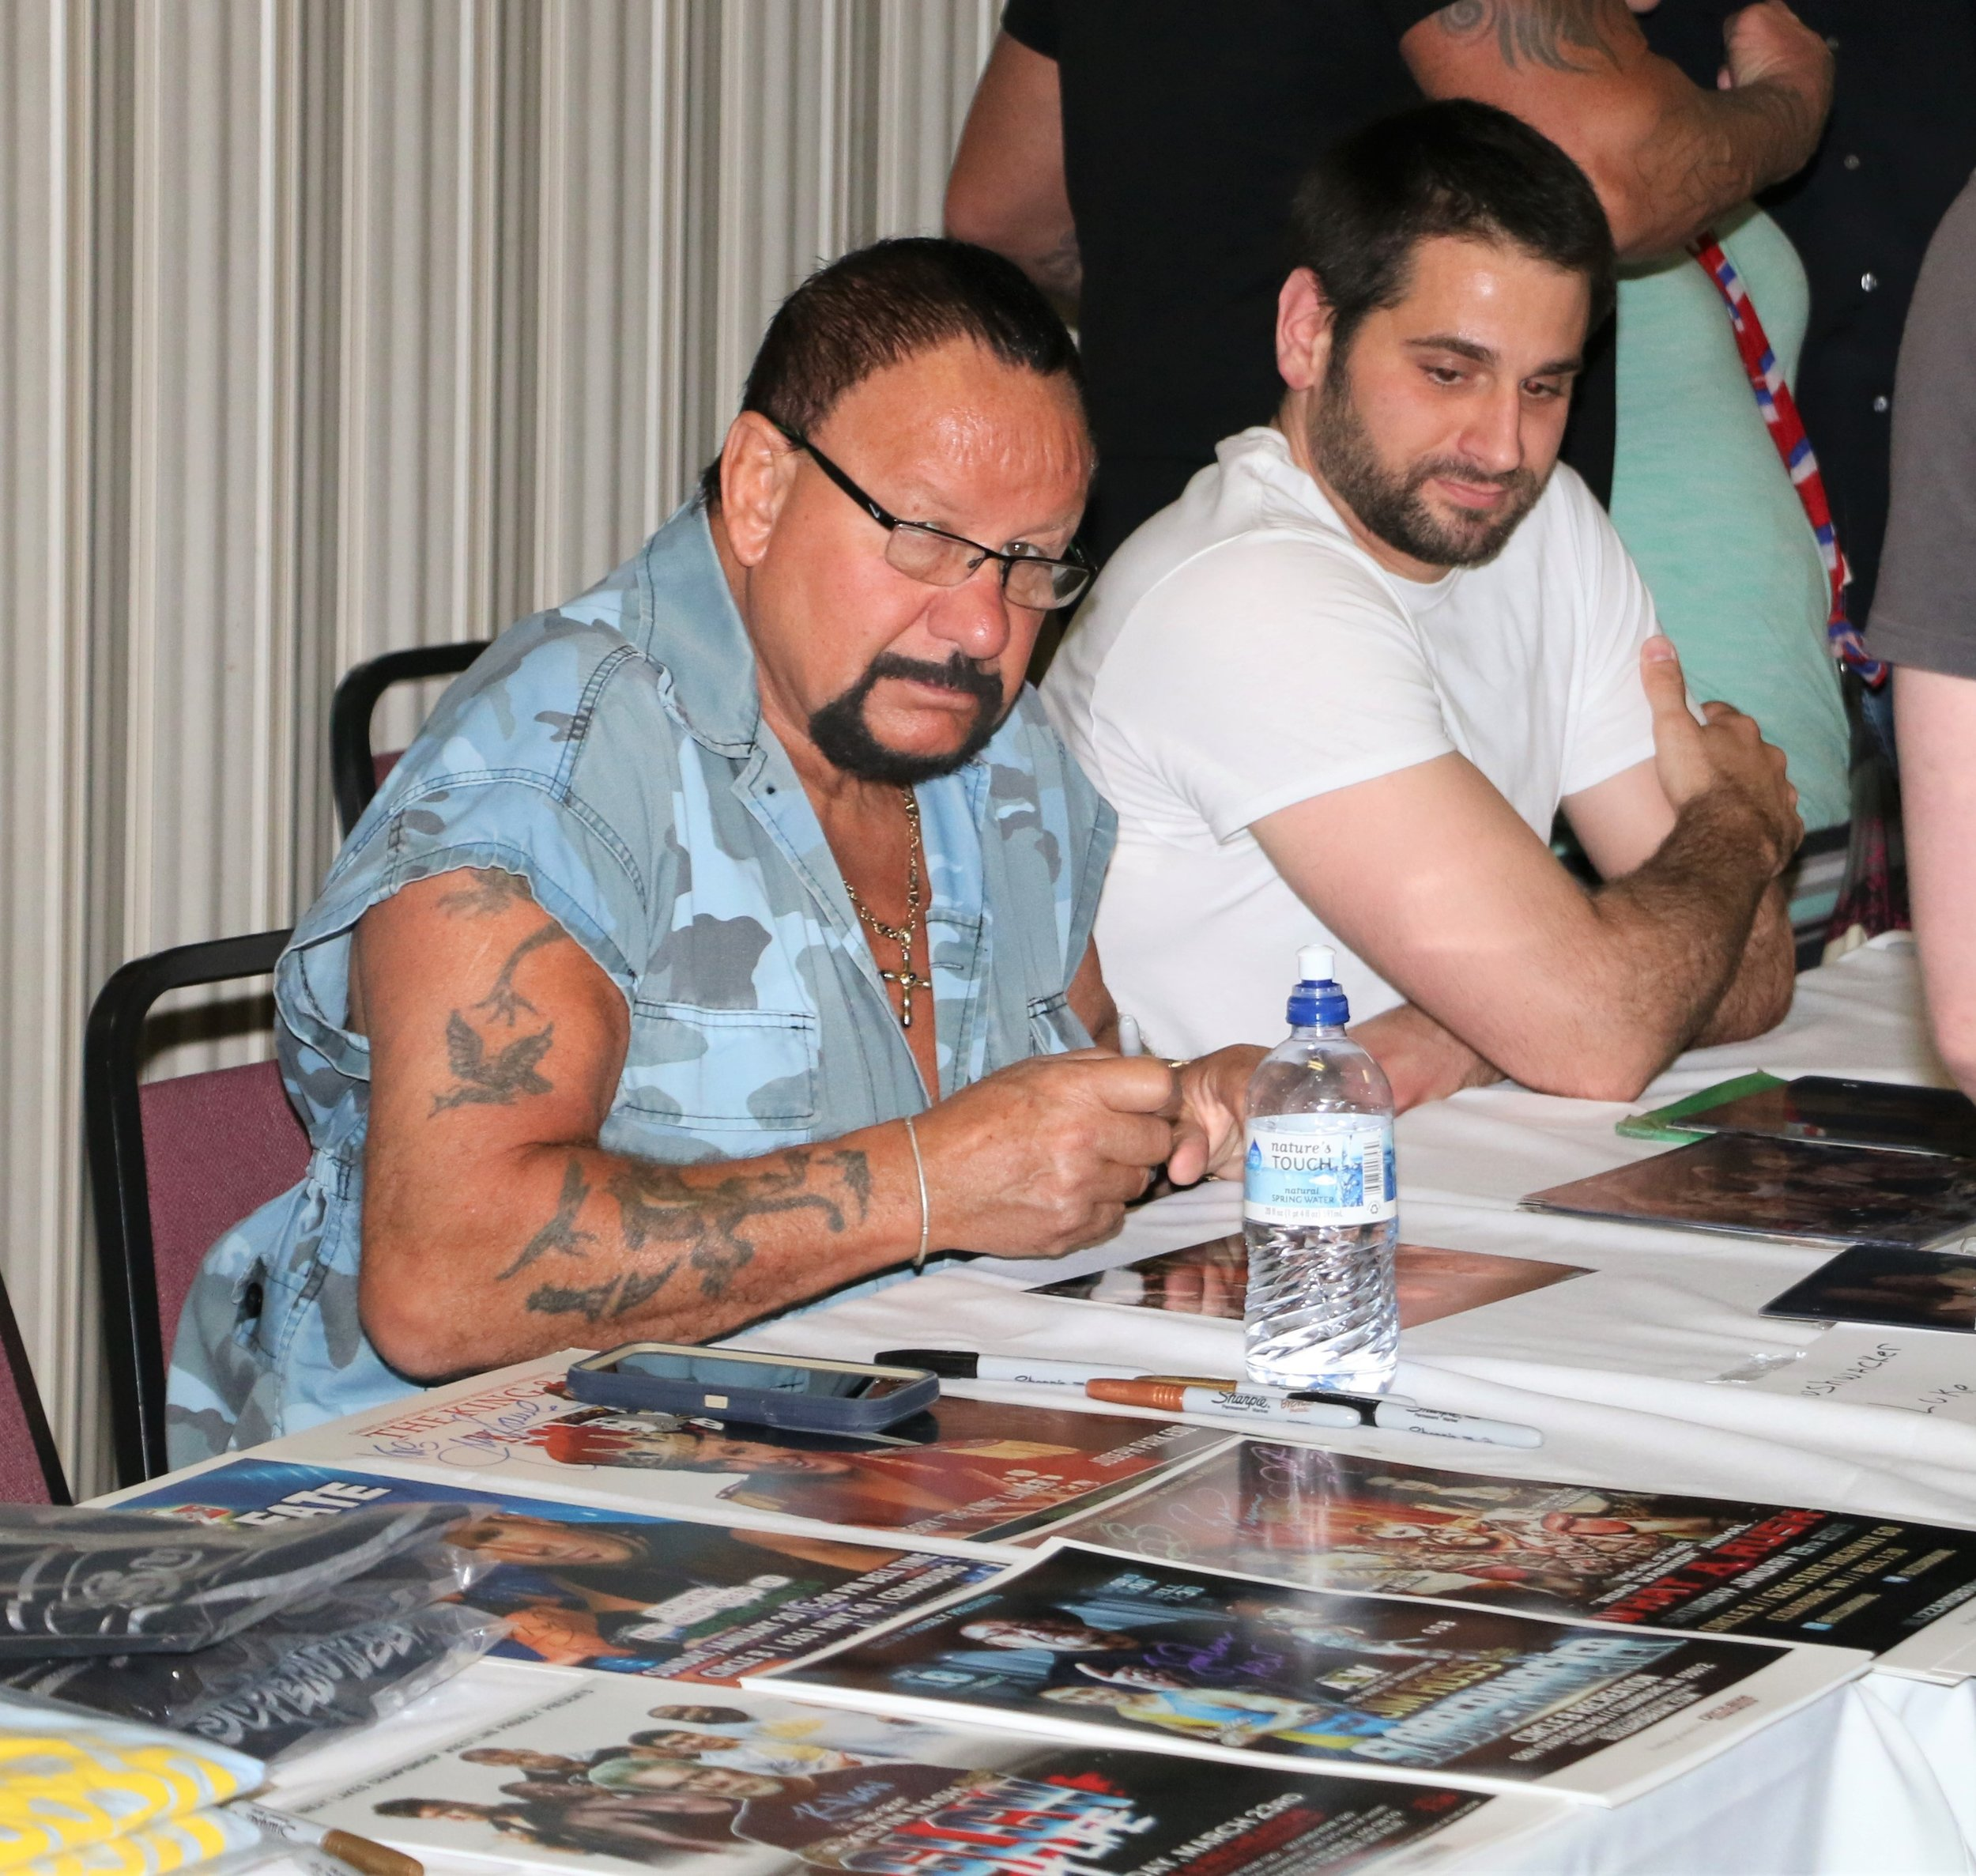 Bushwhacker Luke during the VIP Meet and Greet before the show.